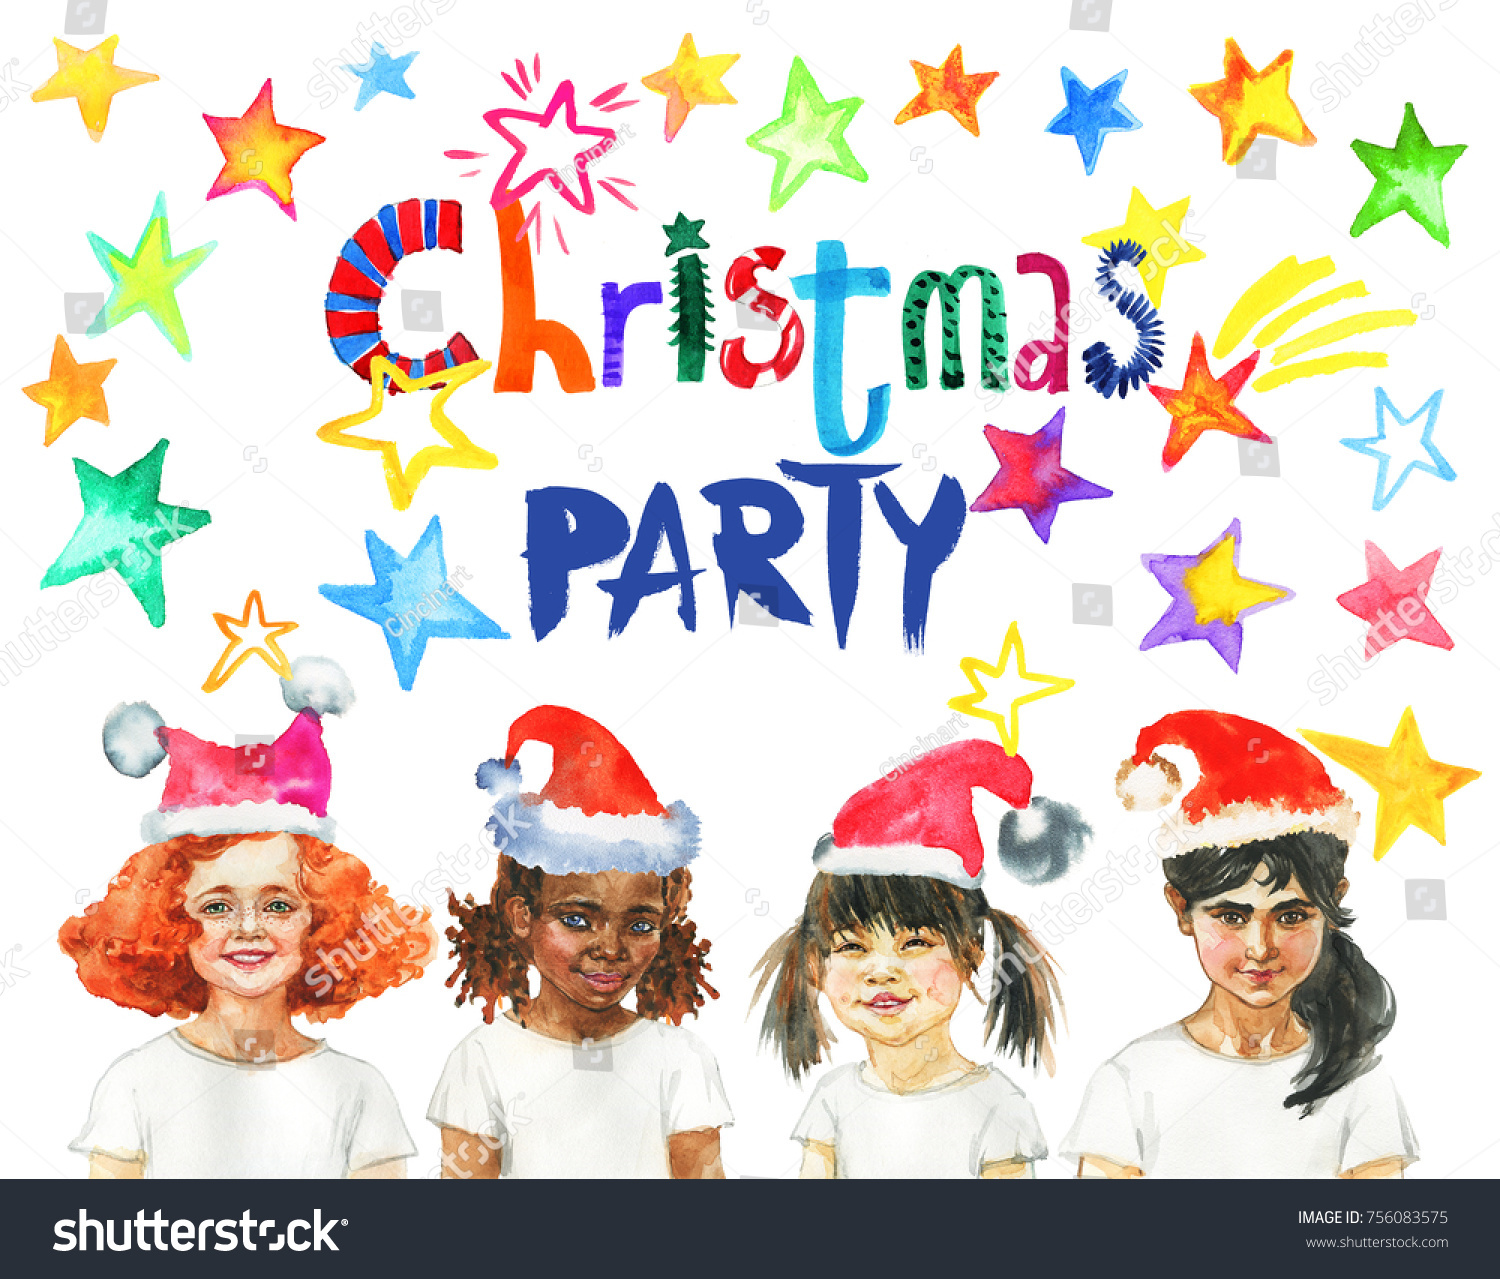 Watercolor Christmas Party Banner Hand Drawn Stock Illustration ...